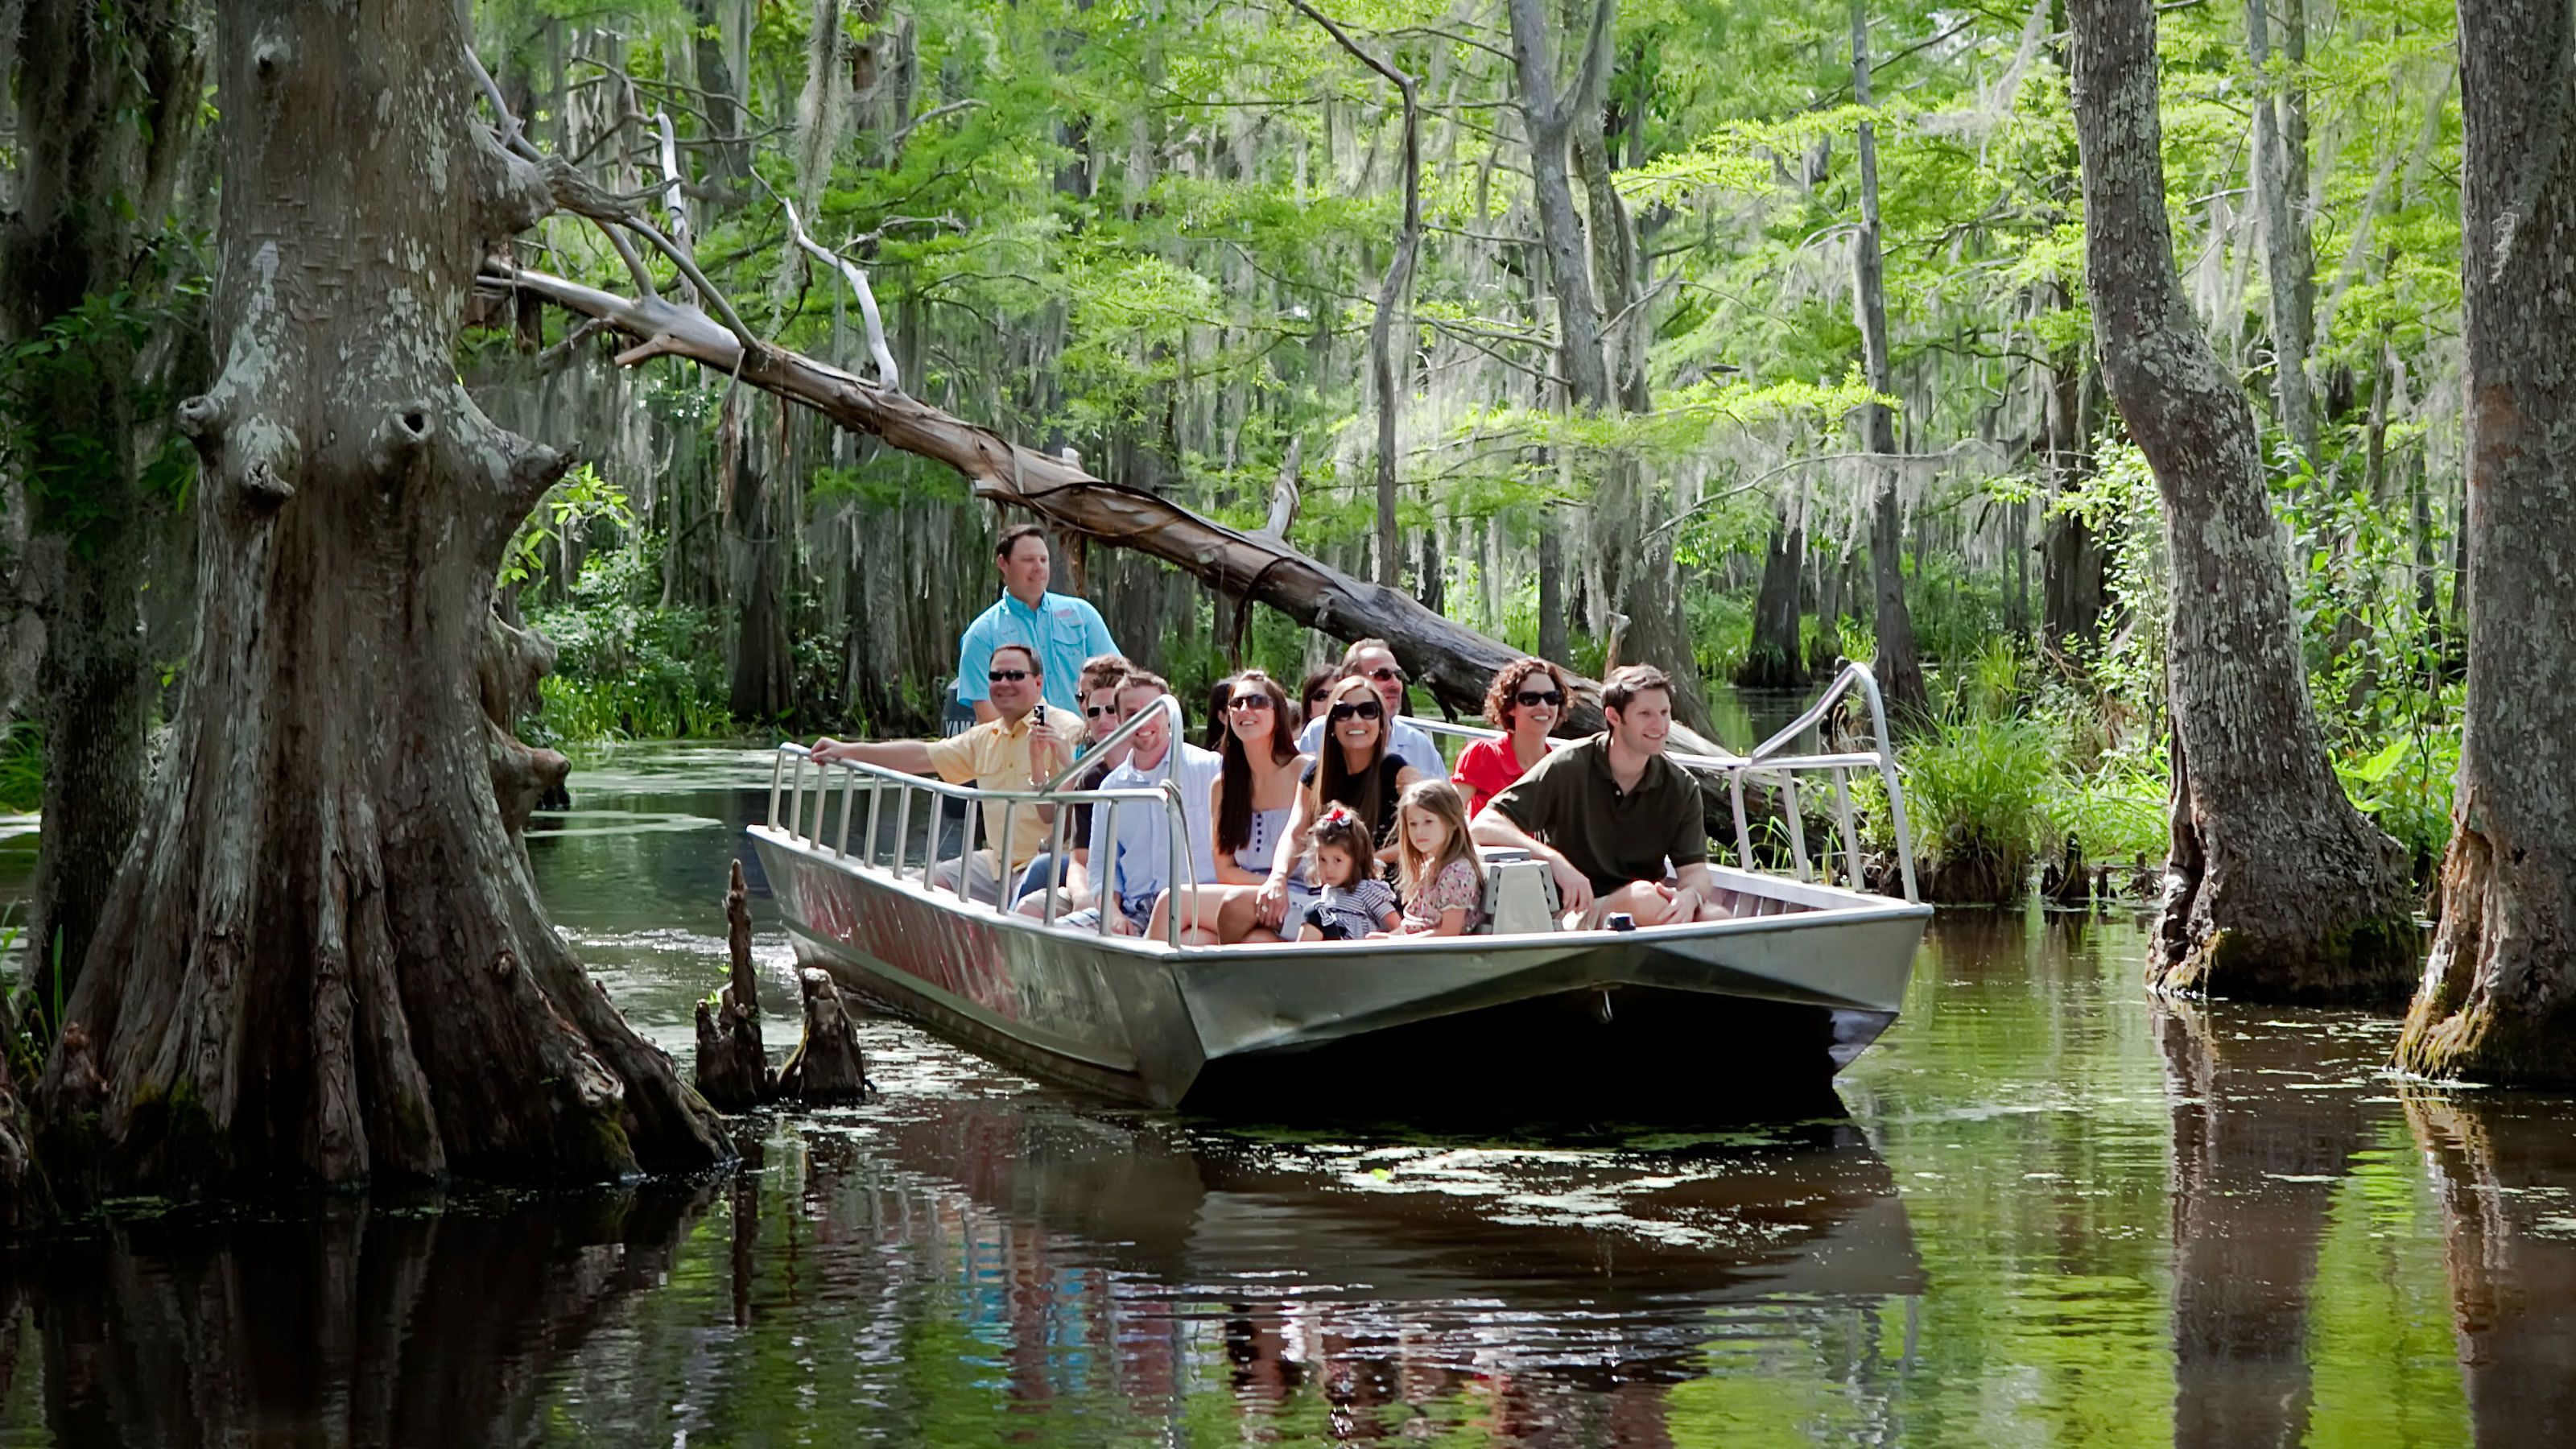 passengers on boat sailing through trees in swamp in New Orleans